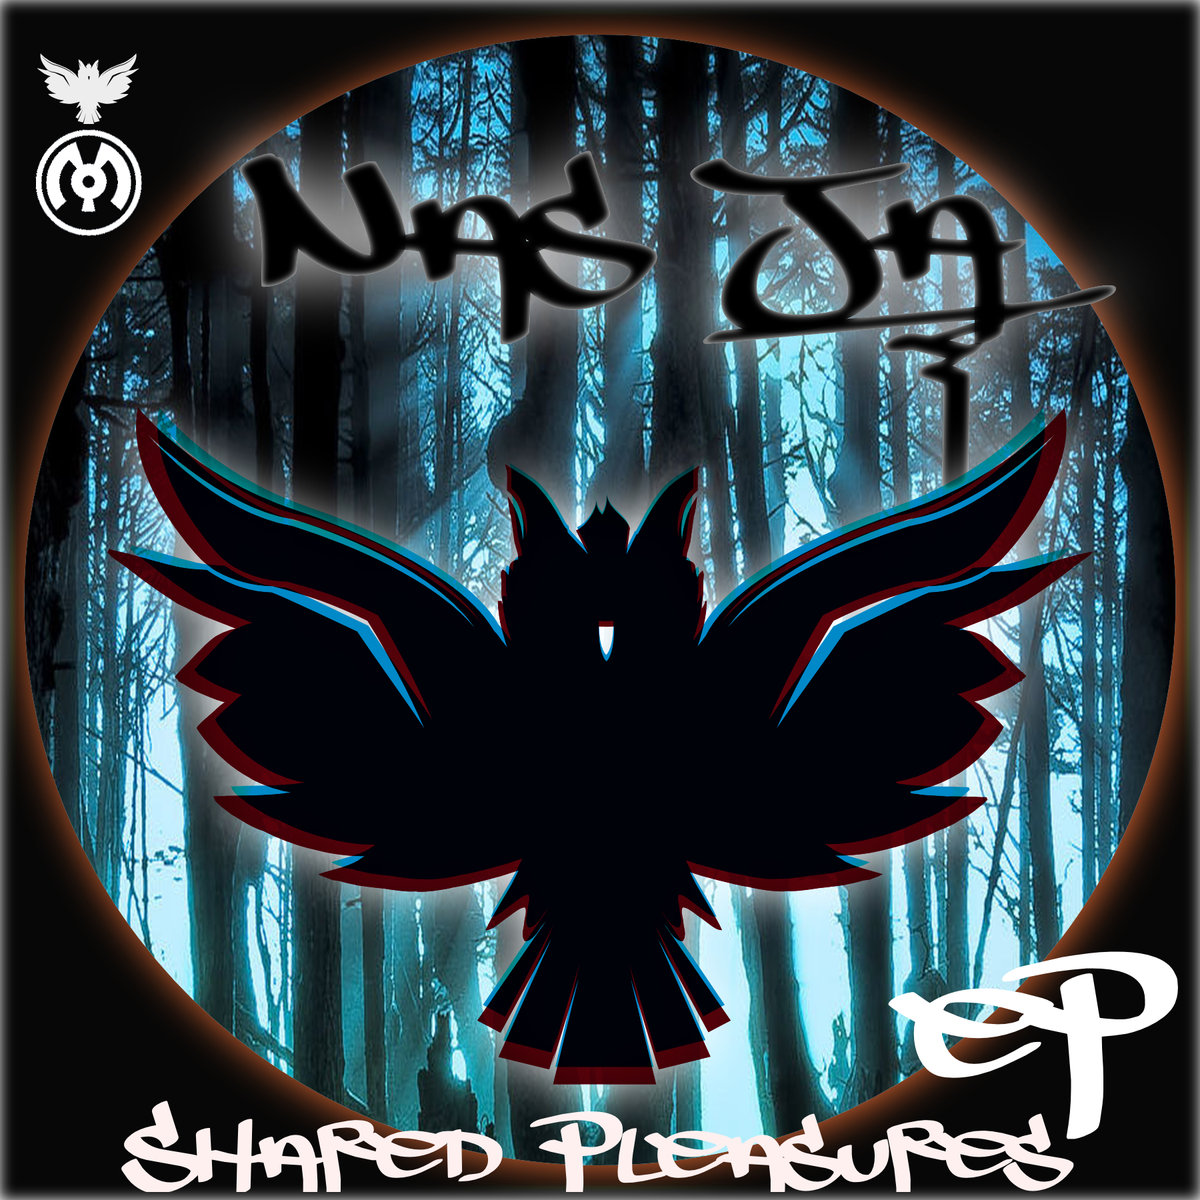 Nas-Ja - Shared Pleasures @ 'Shared Pleasures' album (electronic, dubstep)